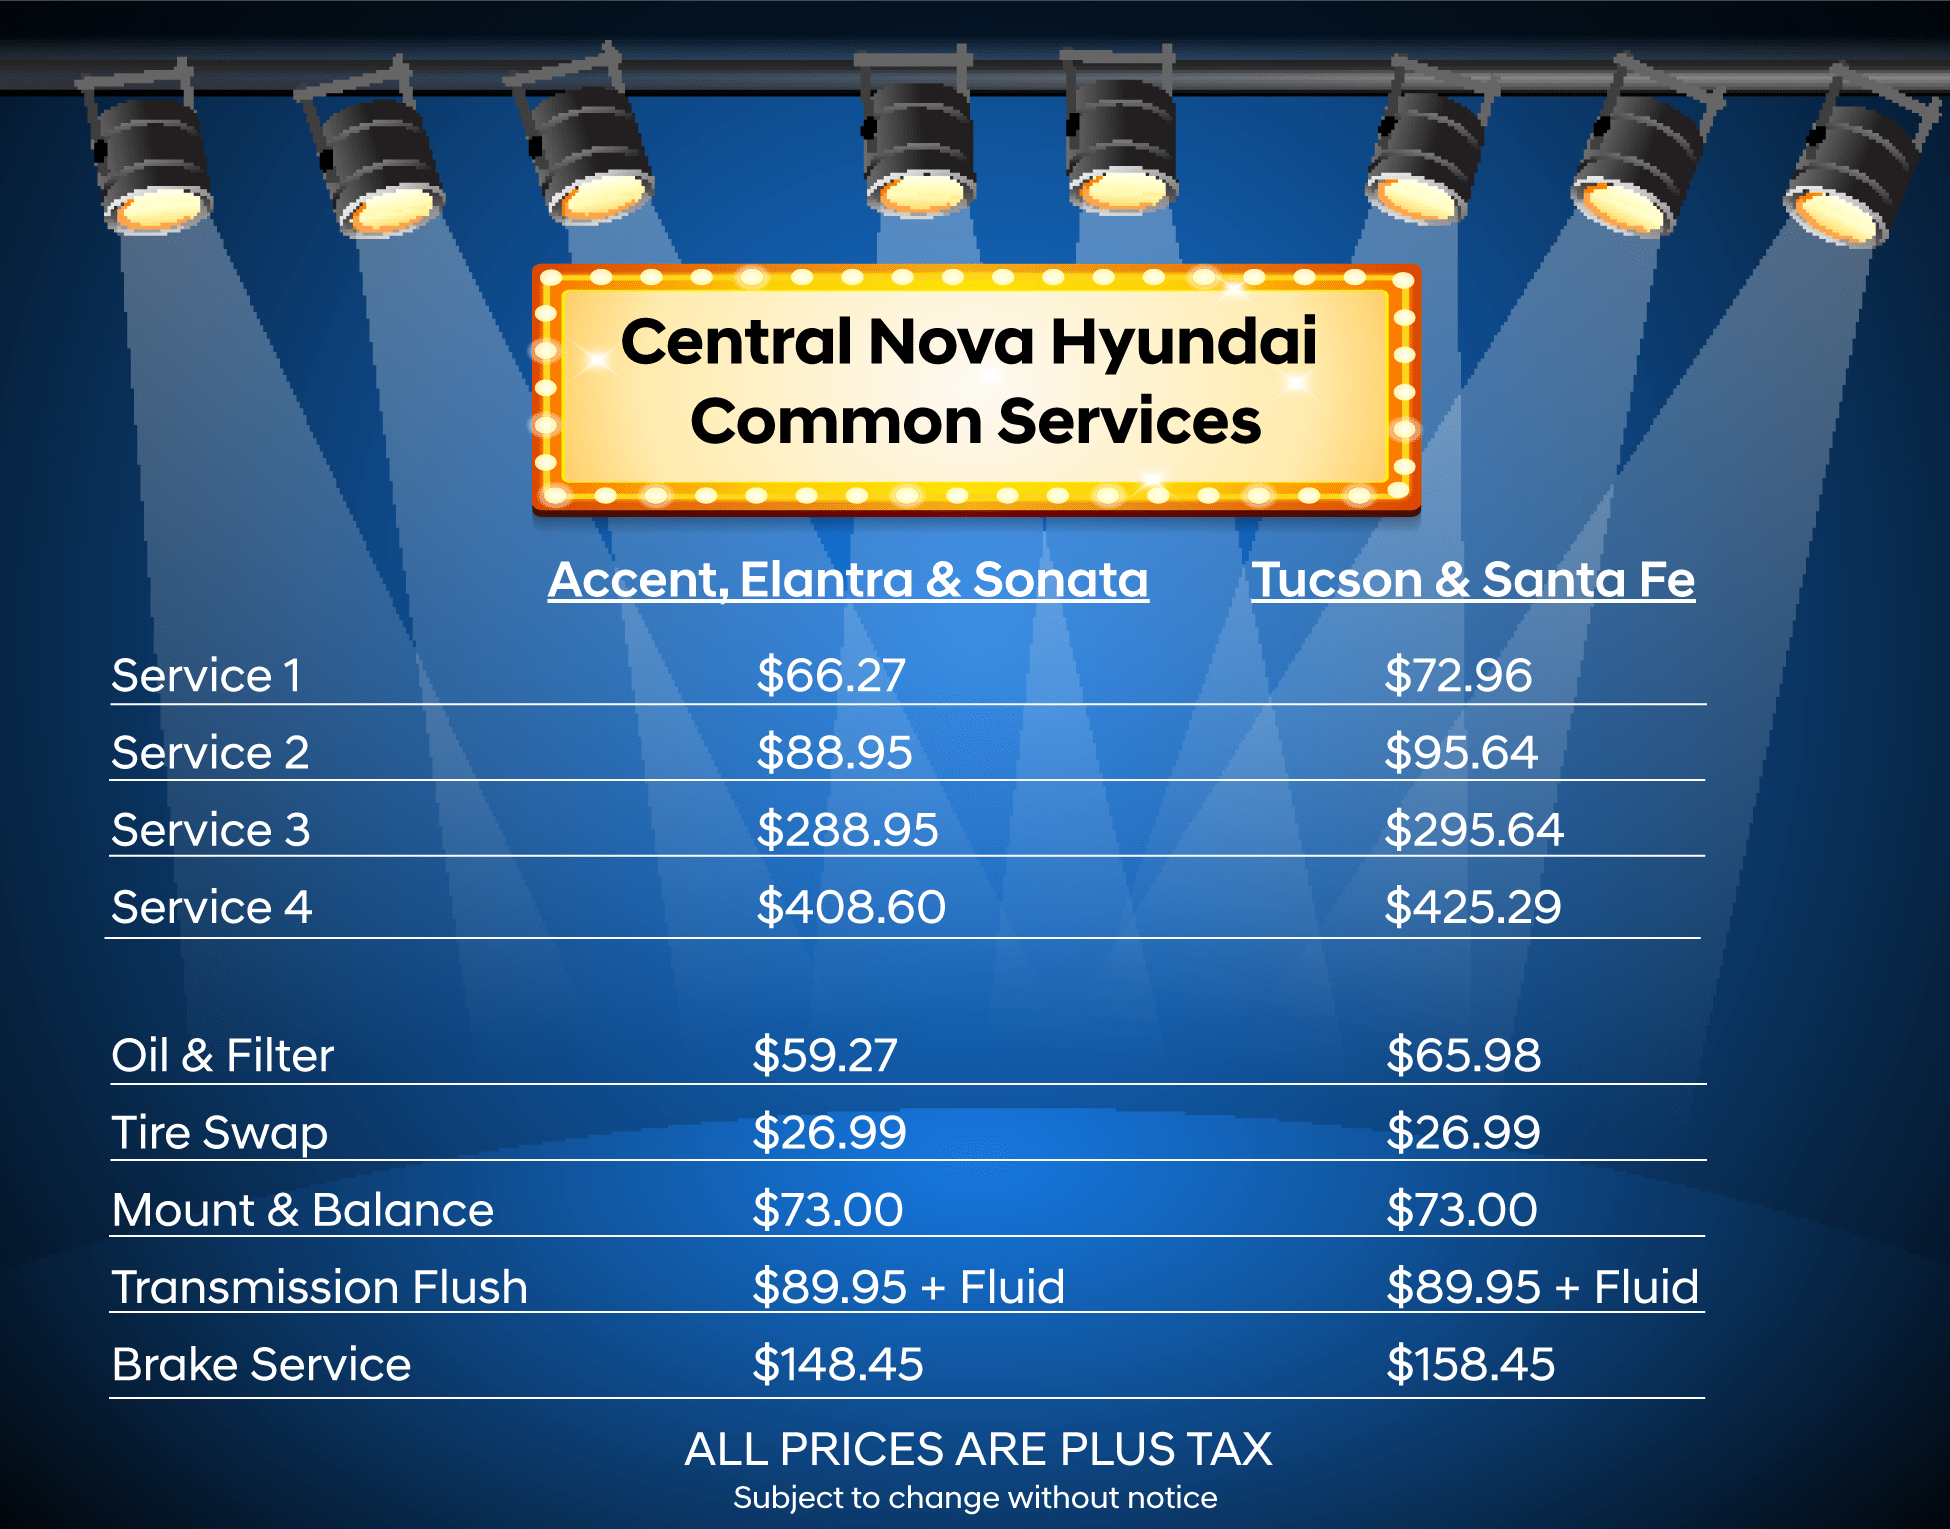 Common Service Pricing